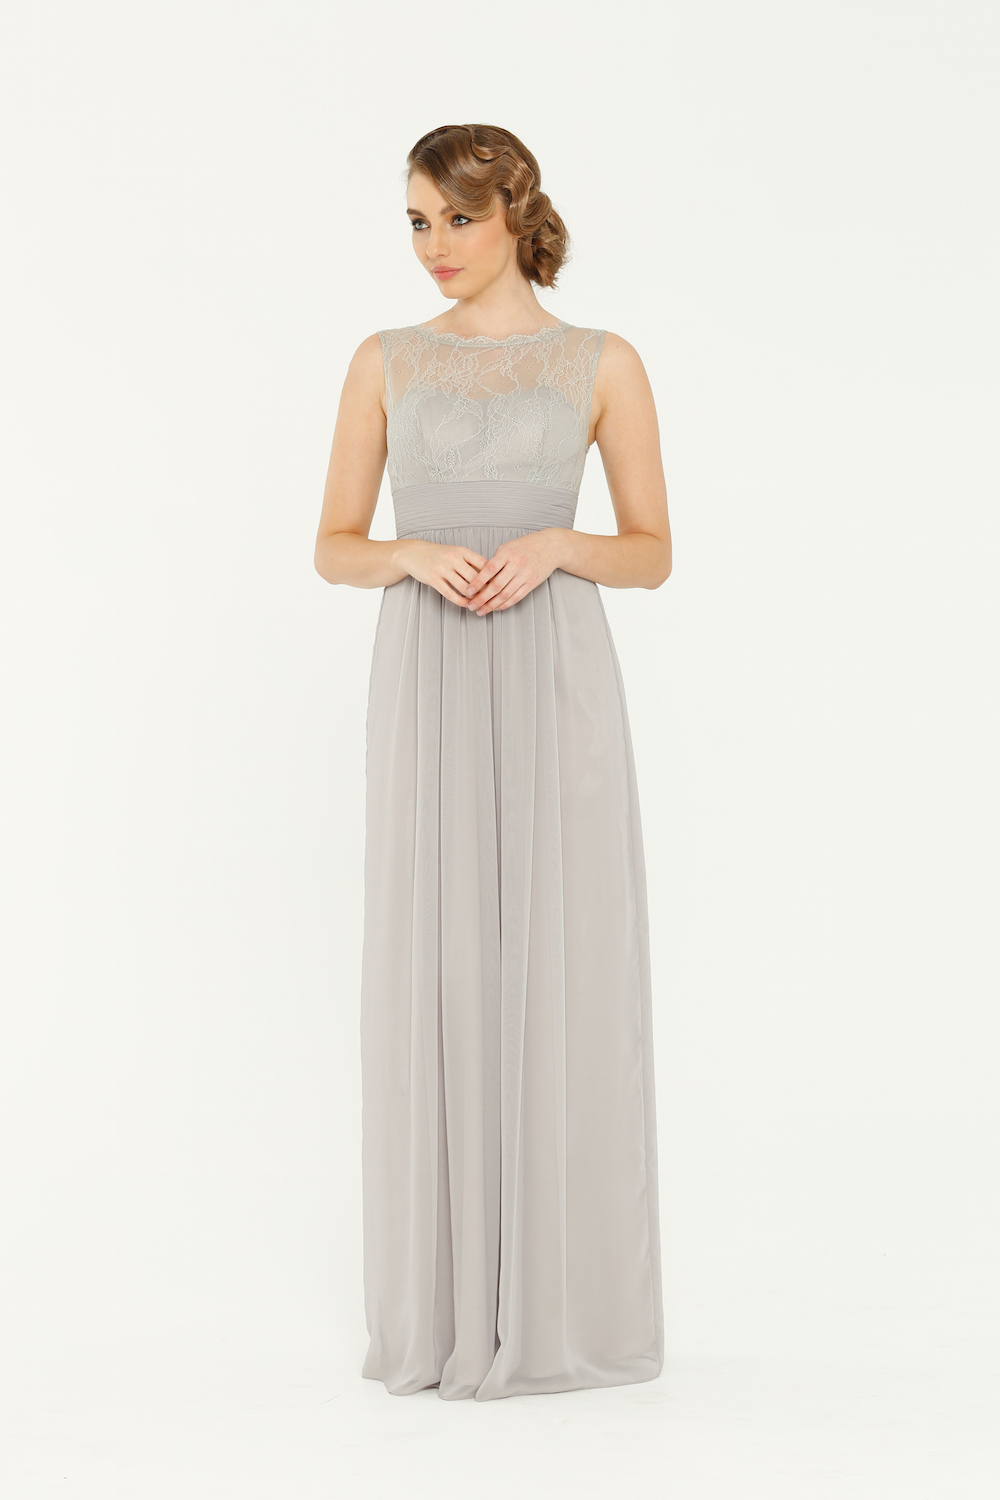 PO34 Charlotte Bridesmaids Dress - end of dye lot grey